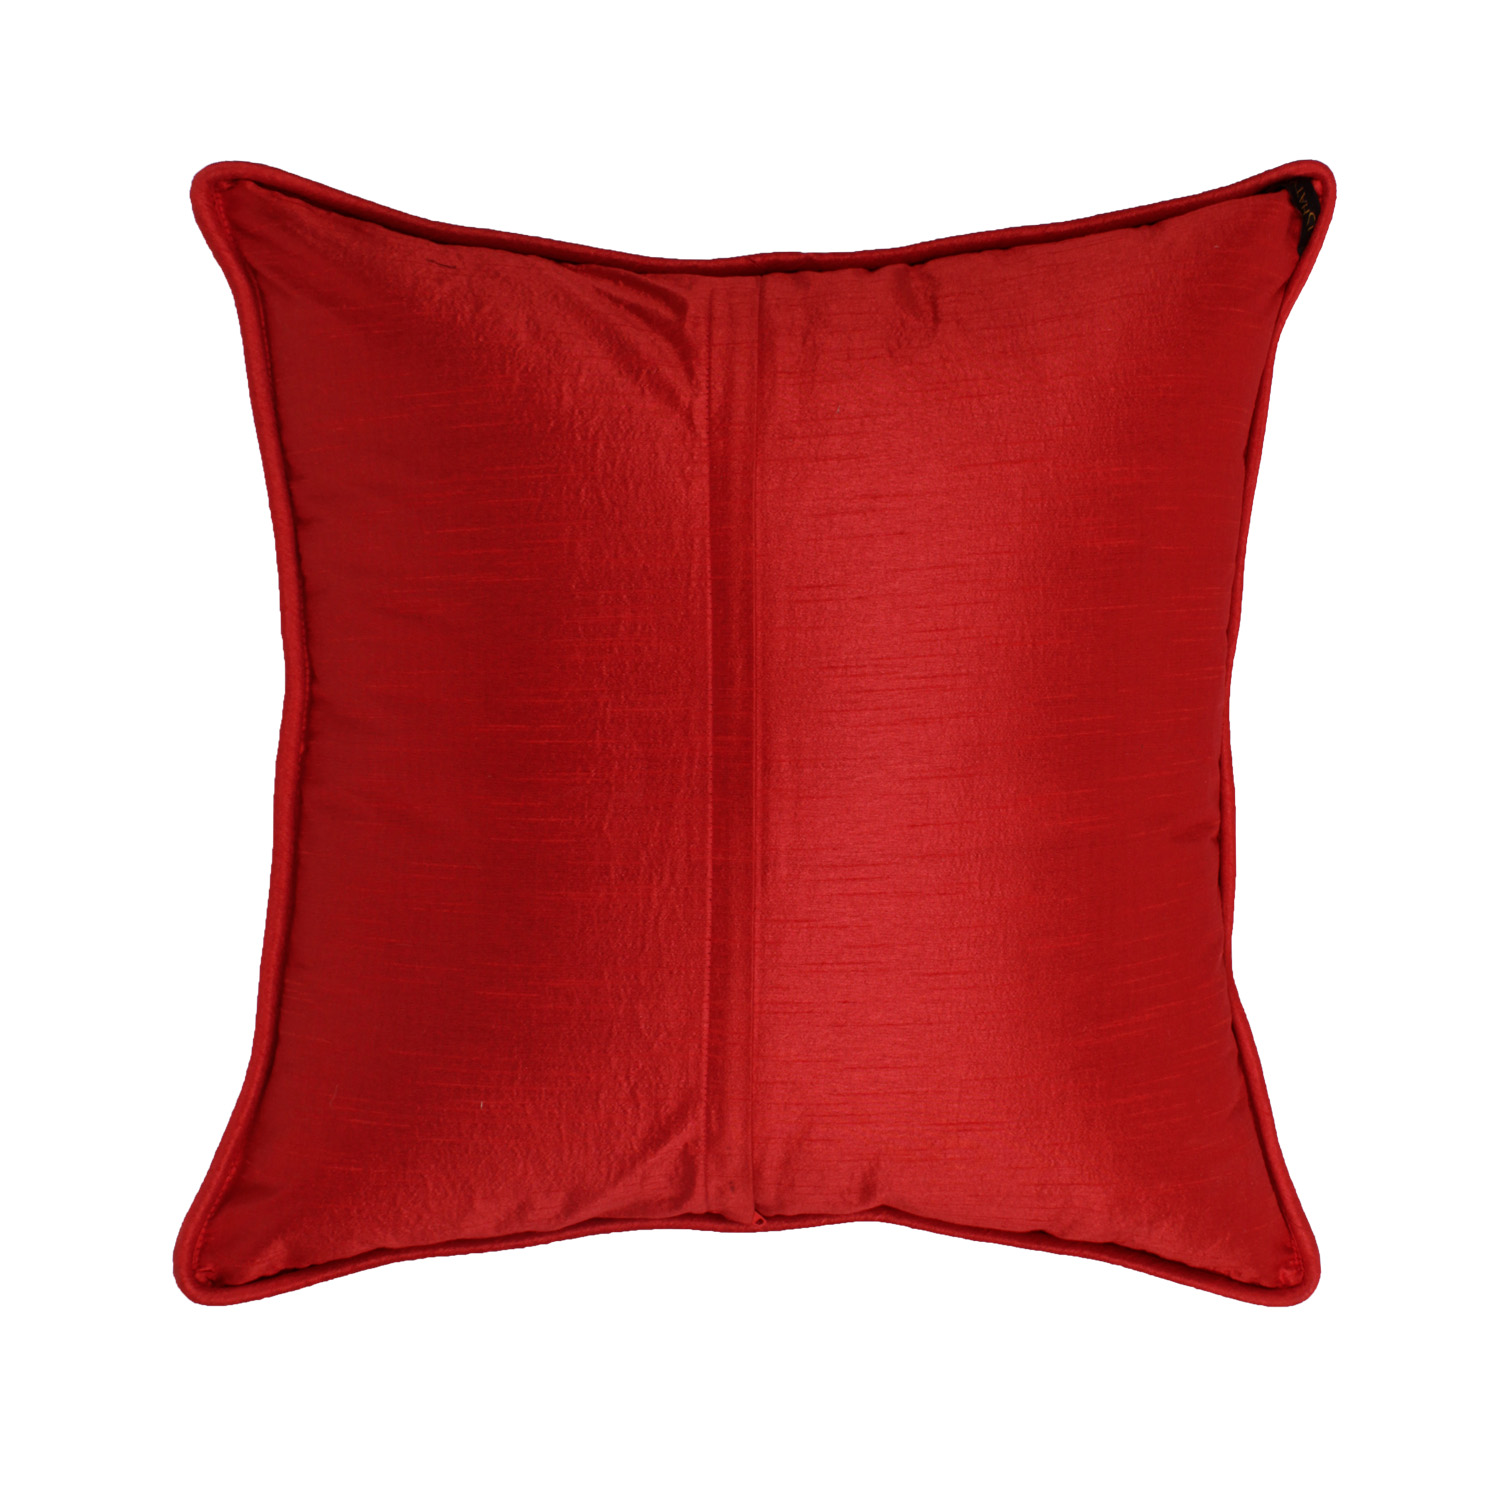 songs of summer cushion Red 1